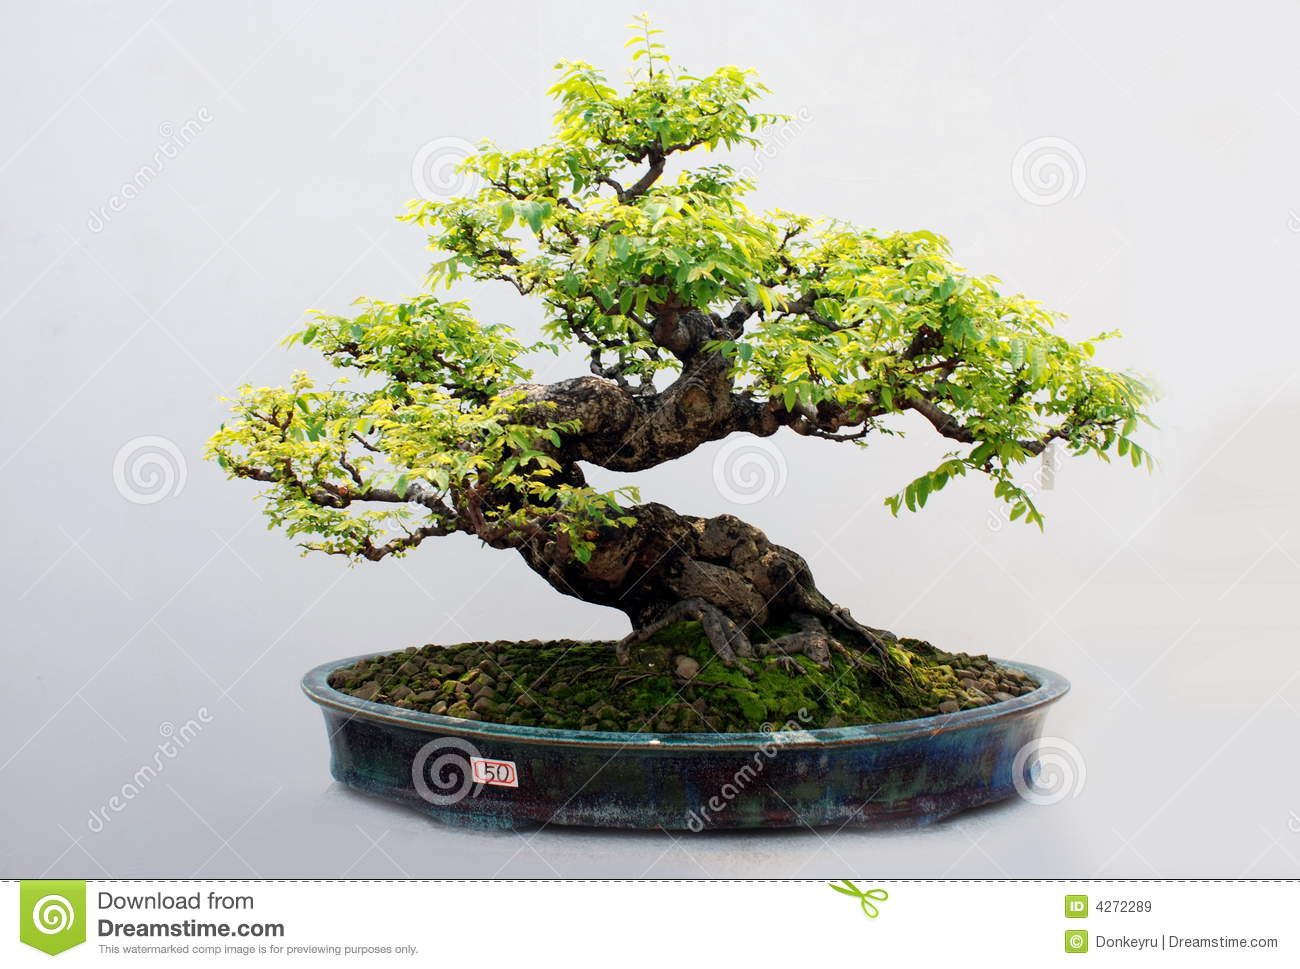 The bonsai of carambola tree